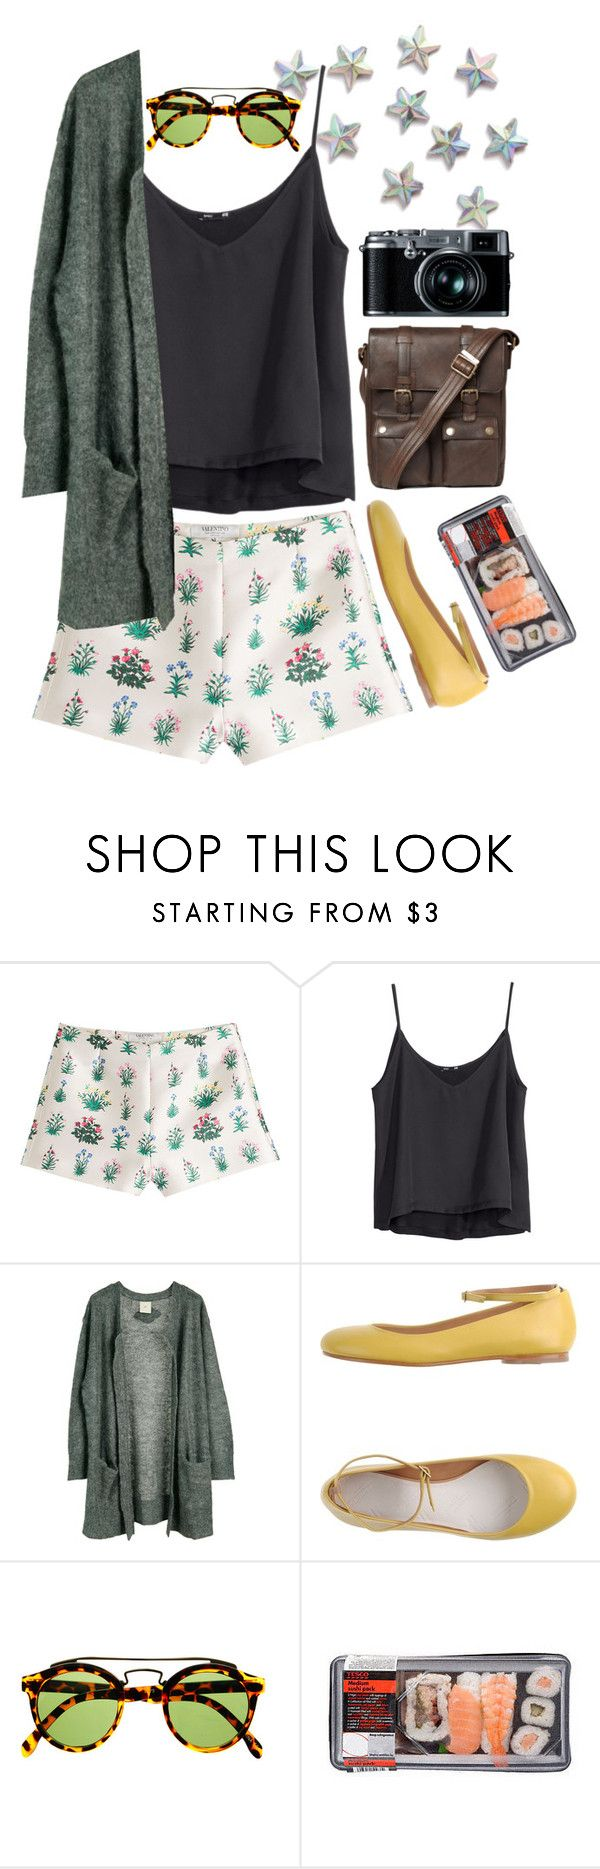 """""""Duck or Chicken?"""" by rileyschae ❤ liked on Polyvore featuring Valentino, H&M, Julie Fagerholt Heartmade, Maison Margiela, Belstaff, Retrò, shorts, printedshorts and cactishorts"""